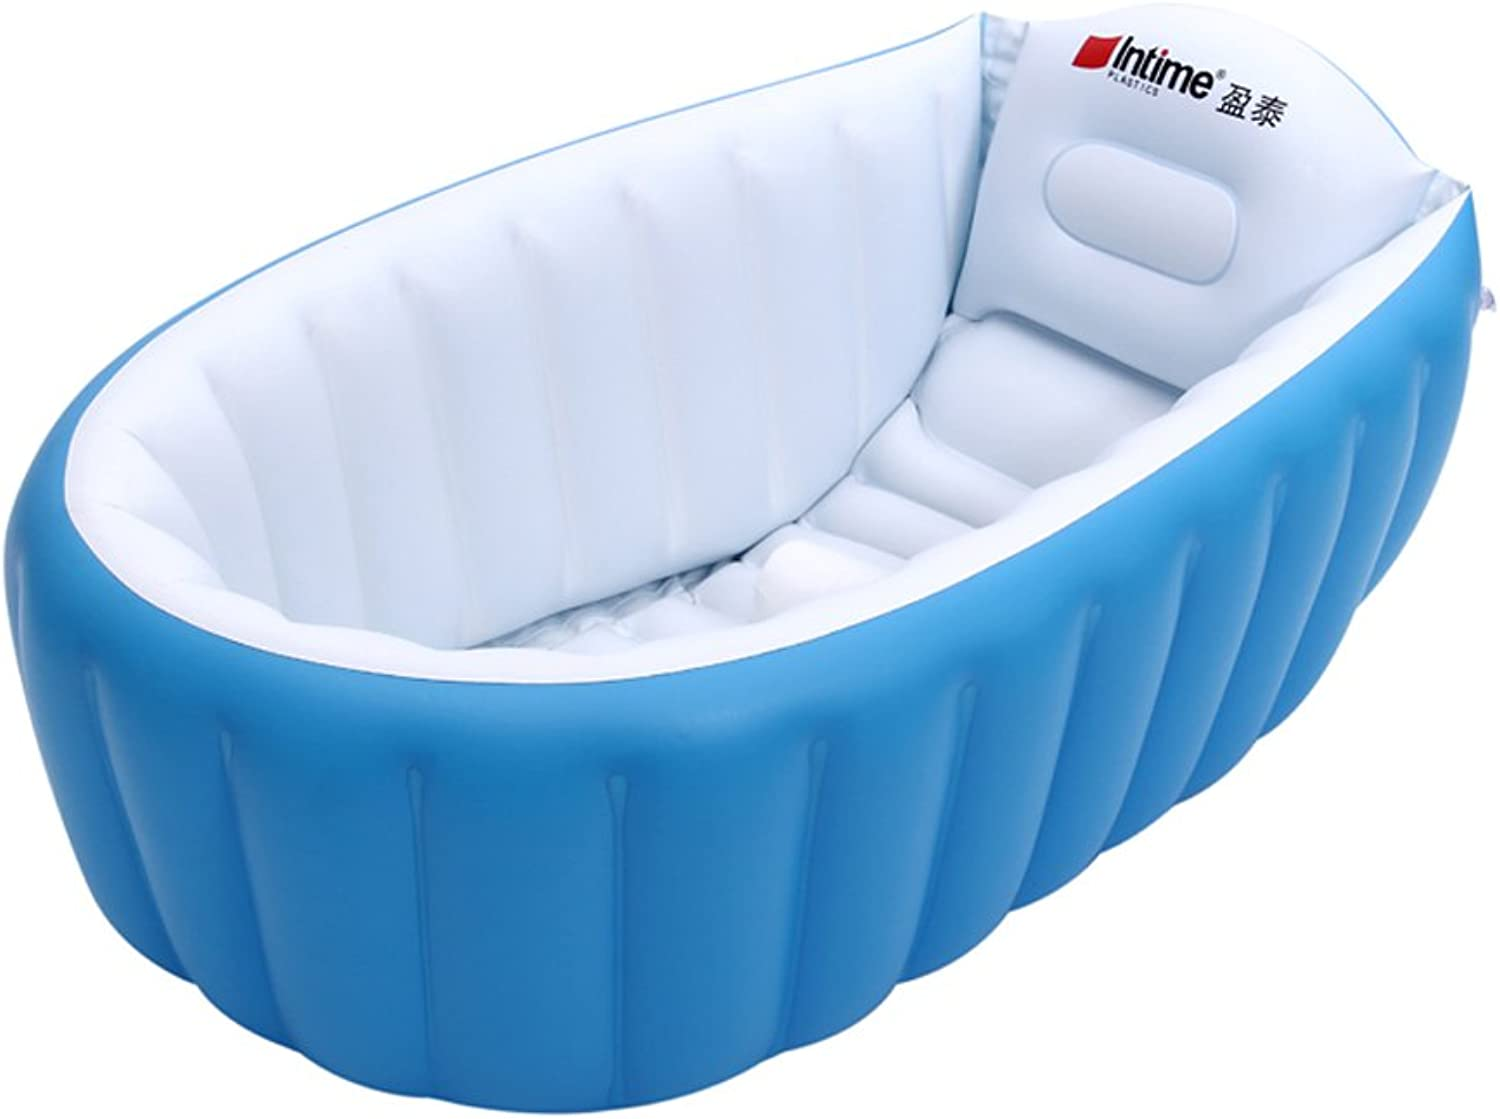 Sunjun& Baby Inflatable Tub, (0-3 Years) Baby Bath (0-3 Years), Pink, bluee ( color   bluee )